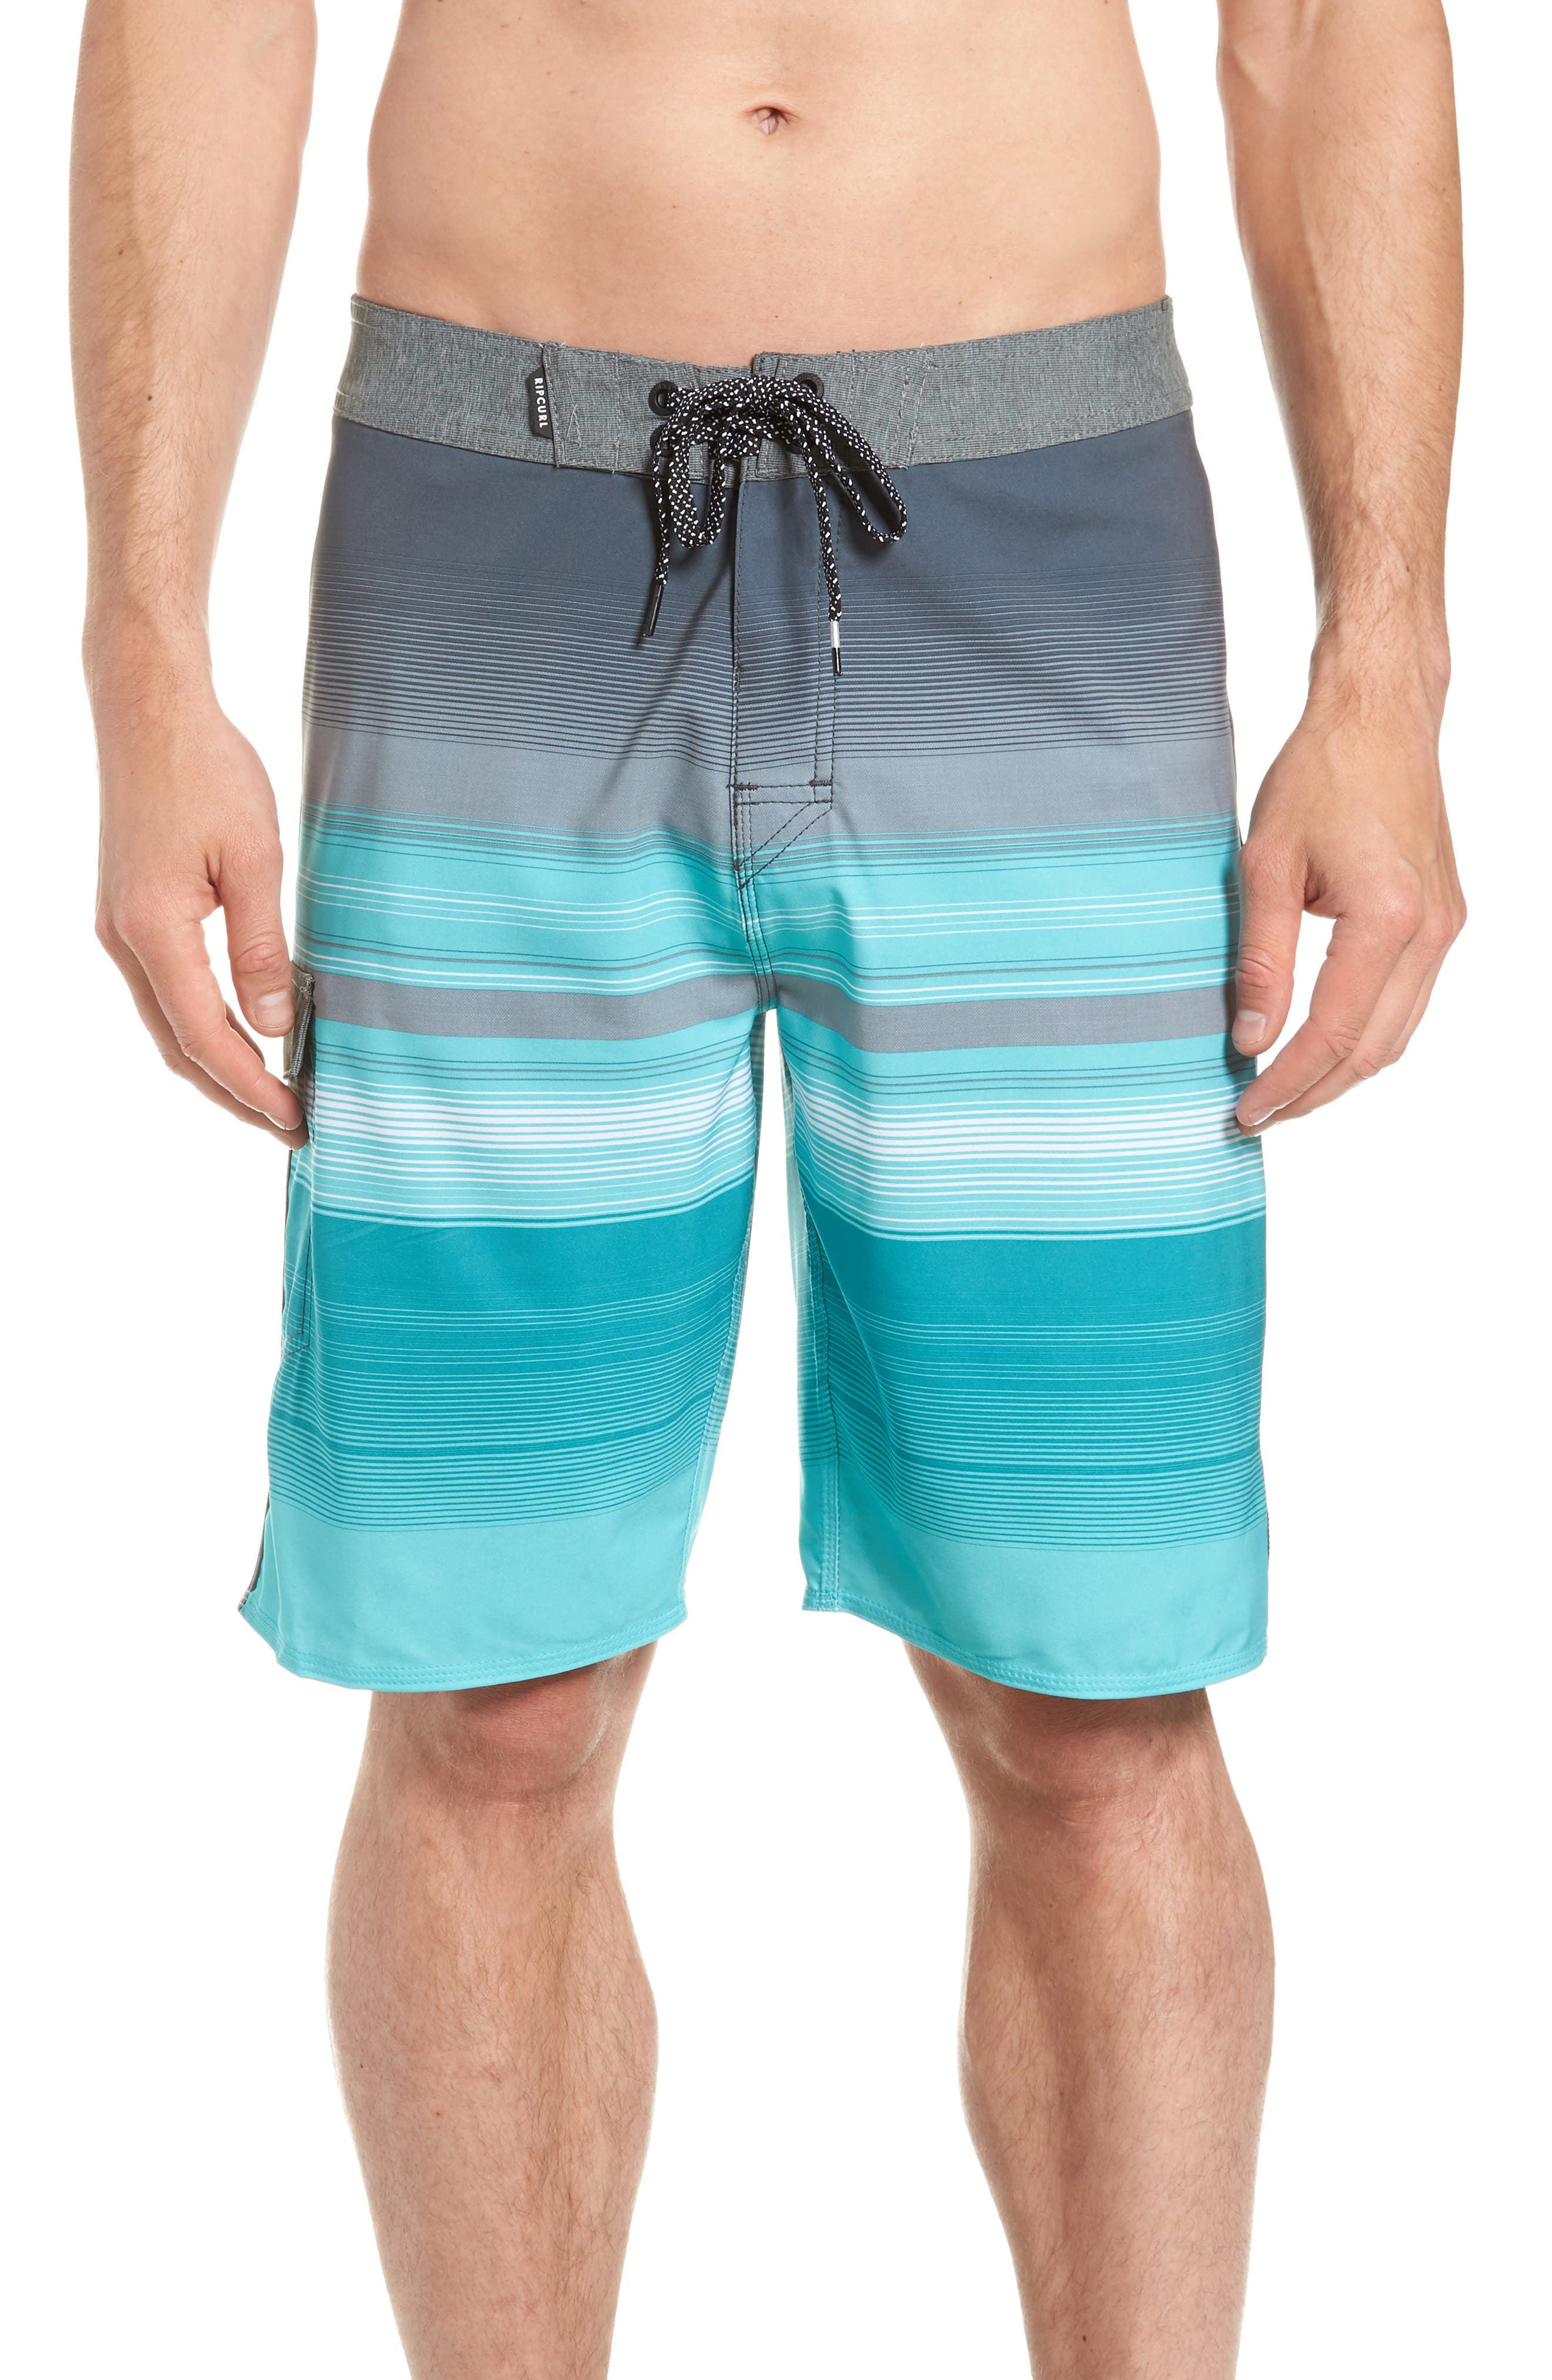 Mirage Accelerate Board Shorts,                             Main thumbnail 1, color,                             Teal